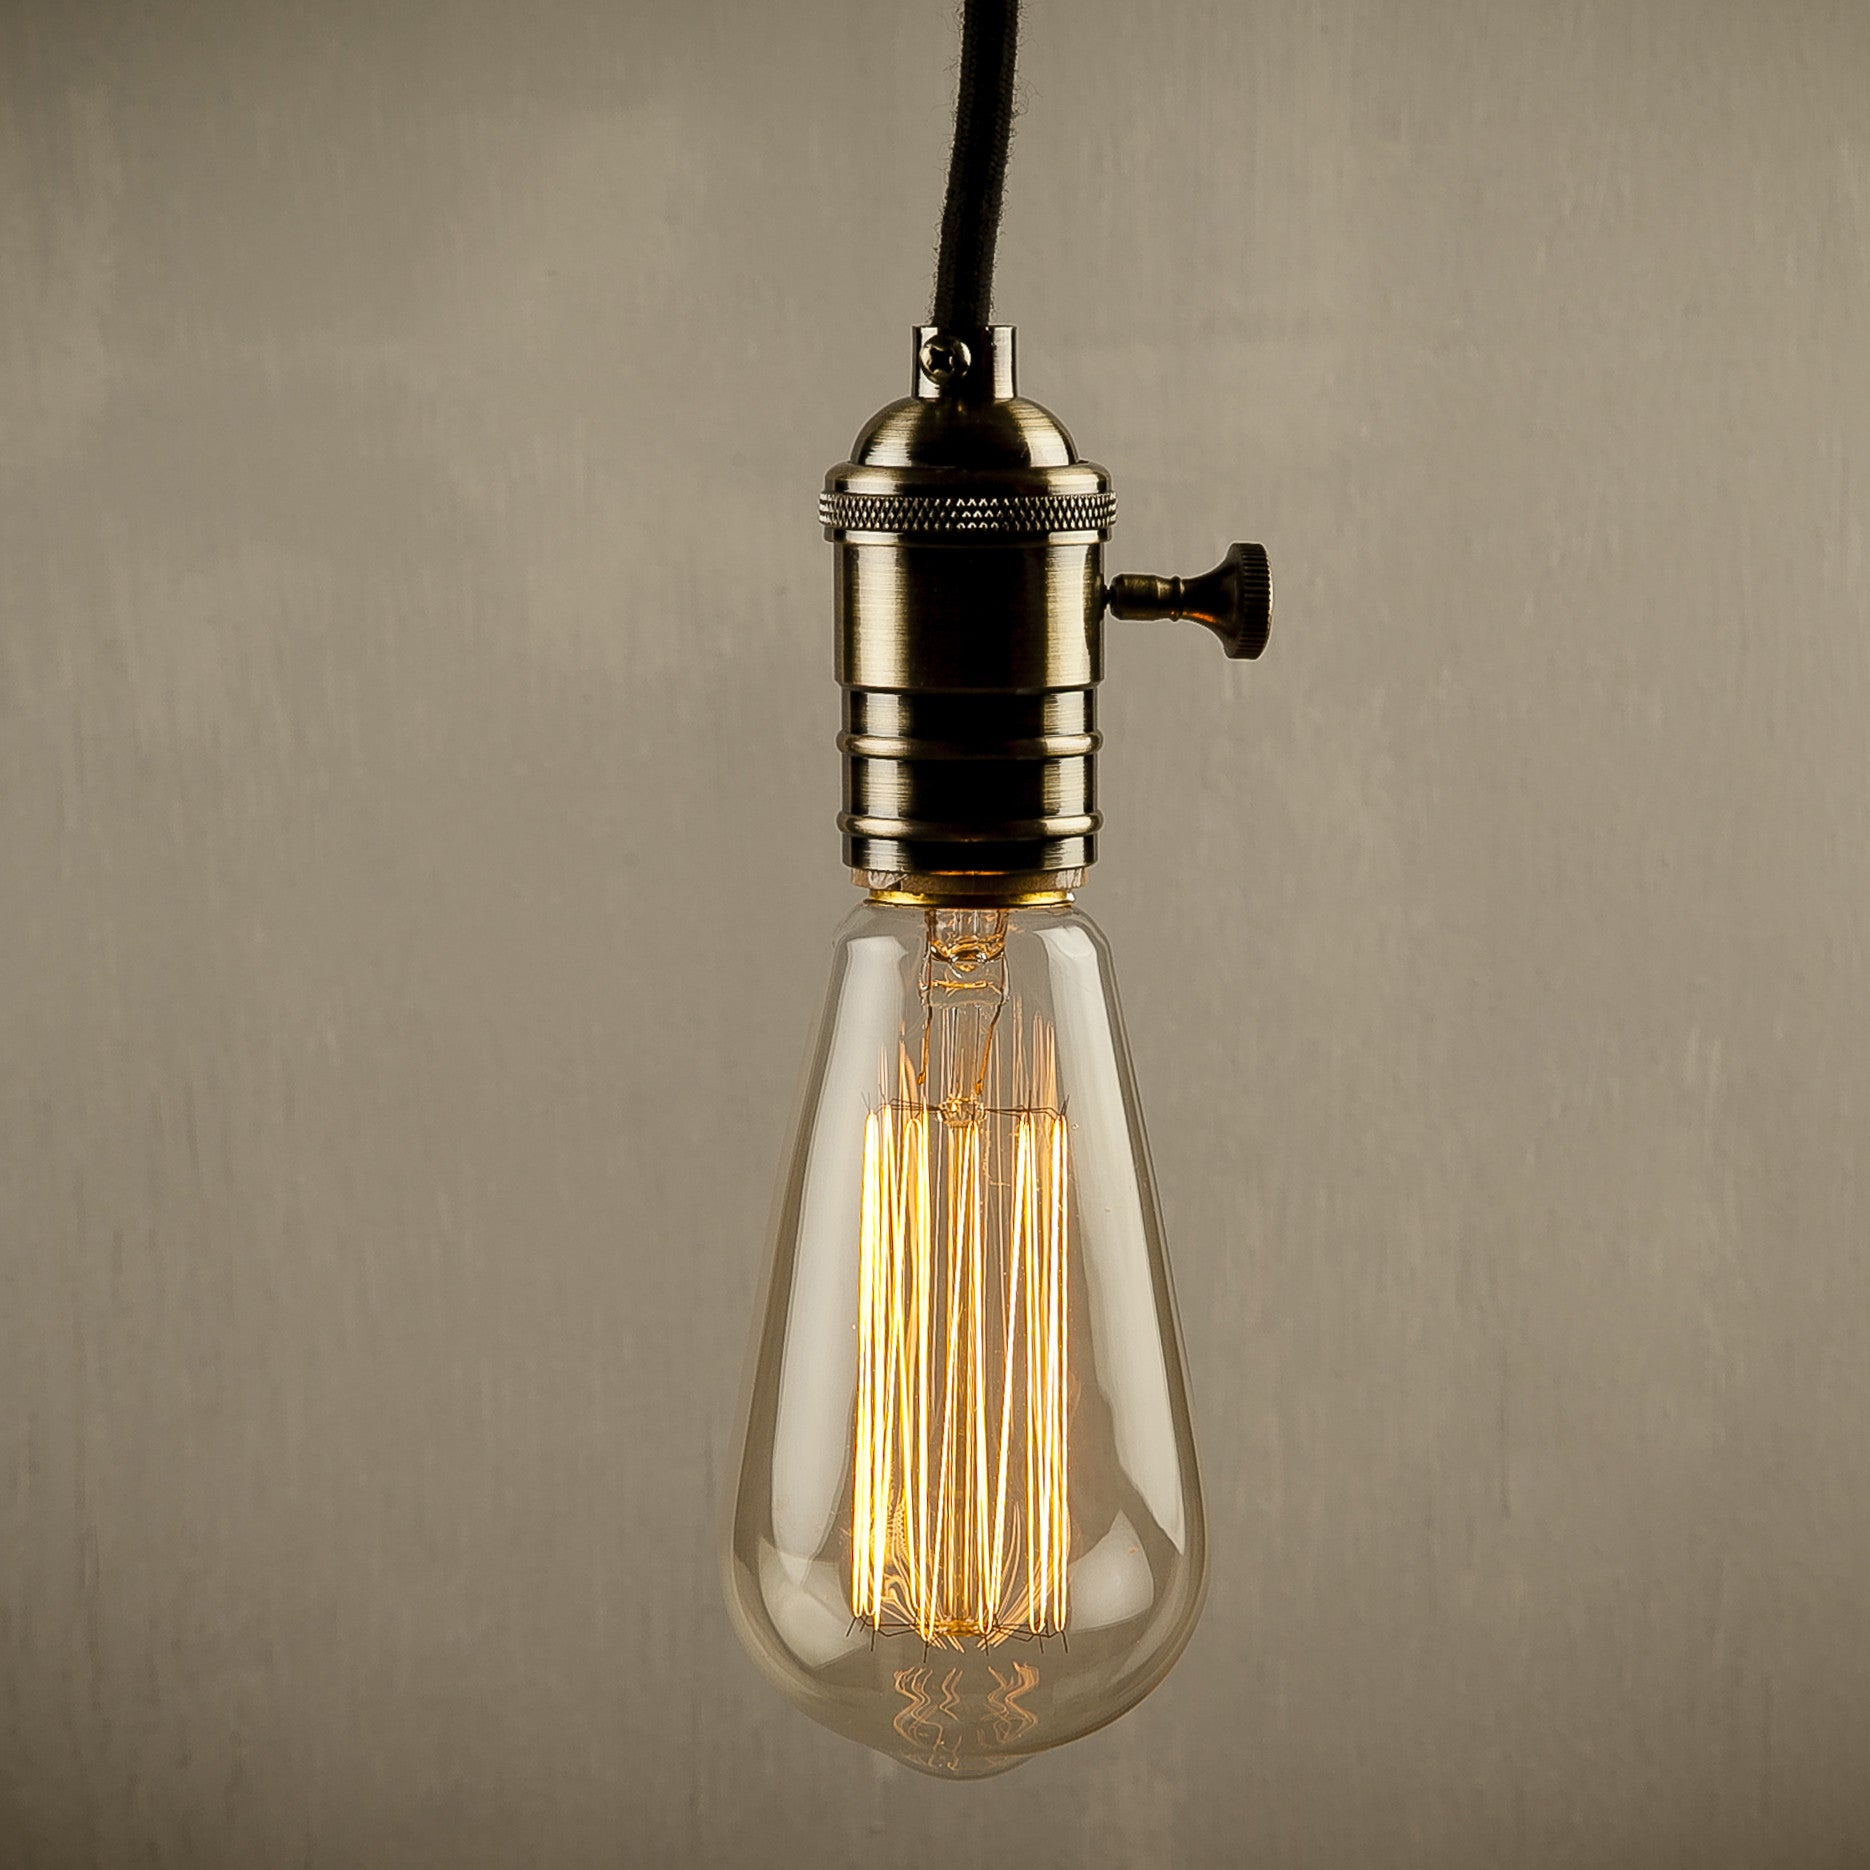 bare bulb lighting. LightenUP Hanging Lamp Bare Bulb Lighting O